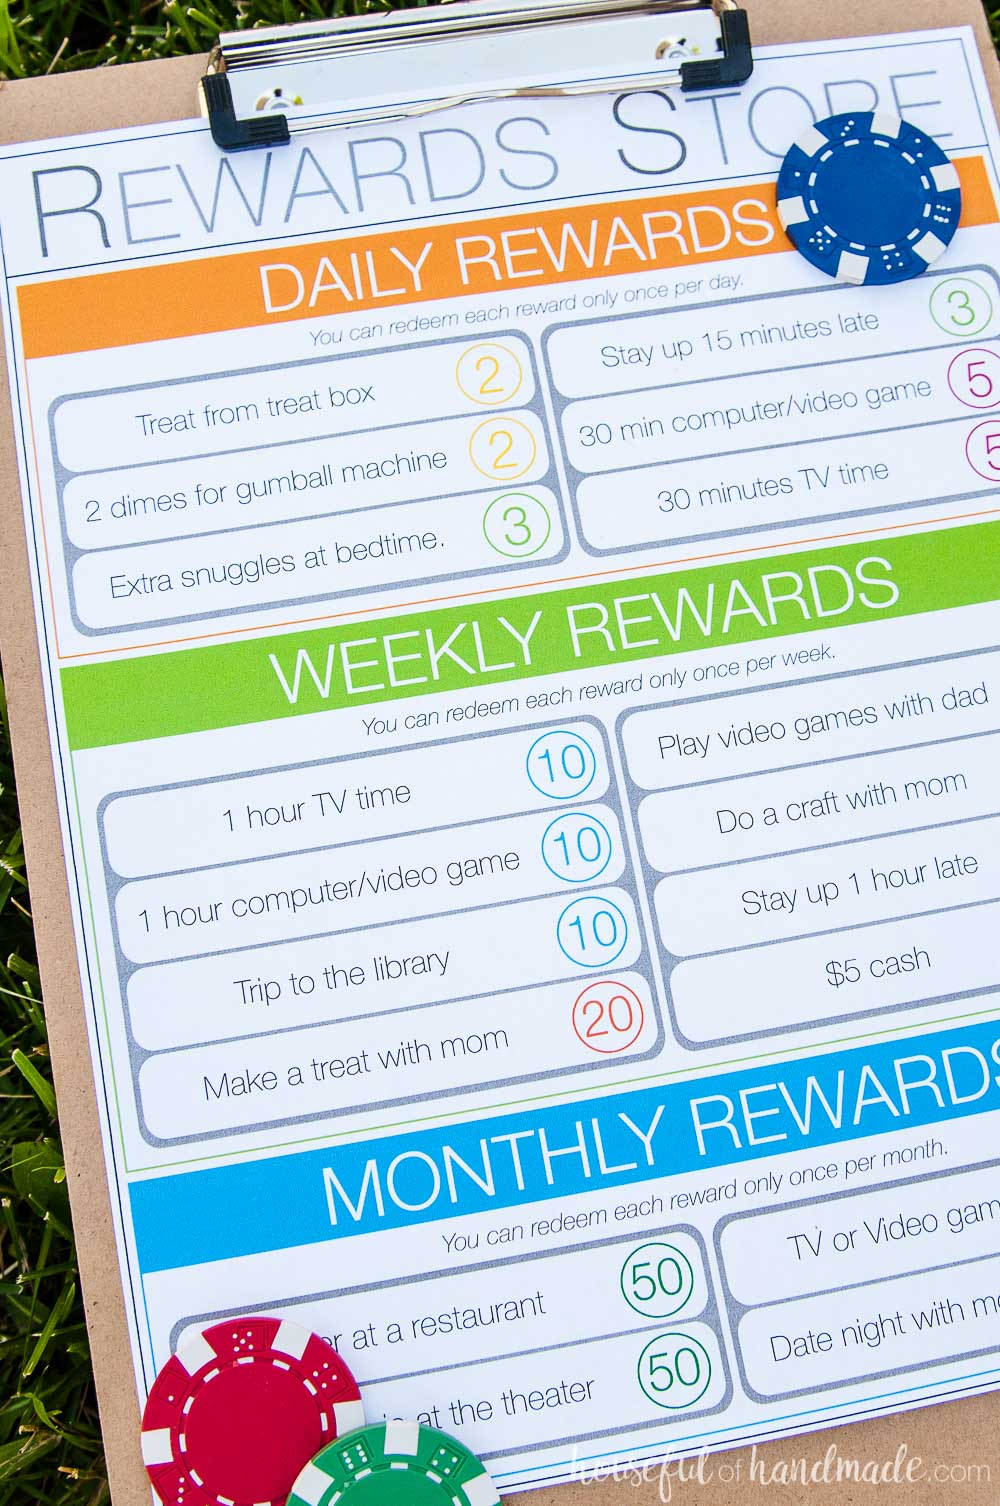 Let your kids earn rewards with their kids chore system. They can save up for big rewards and learn to manage their money. Housefulofhandmade.com